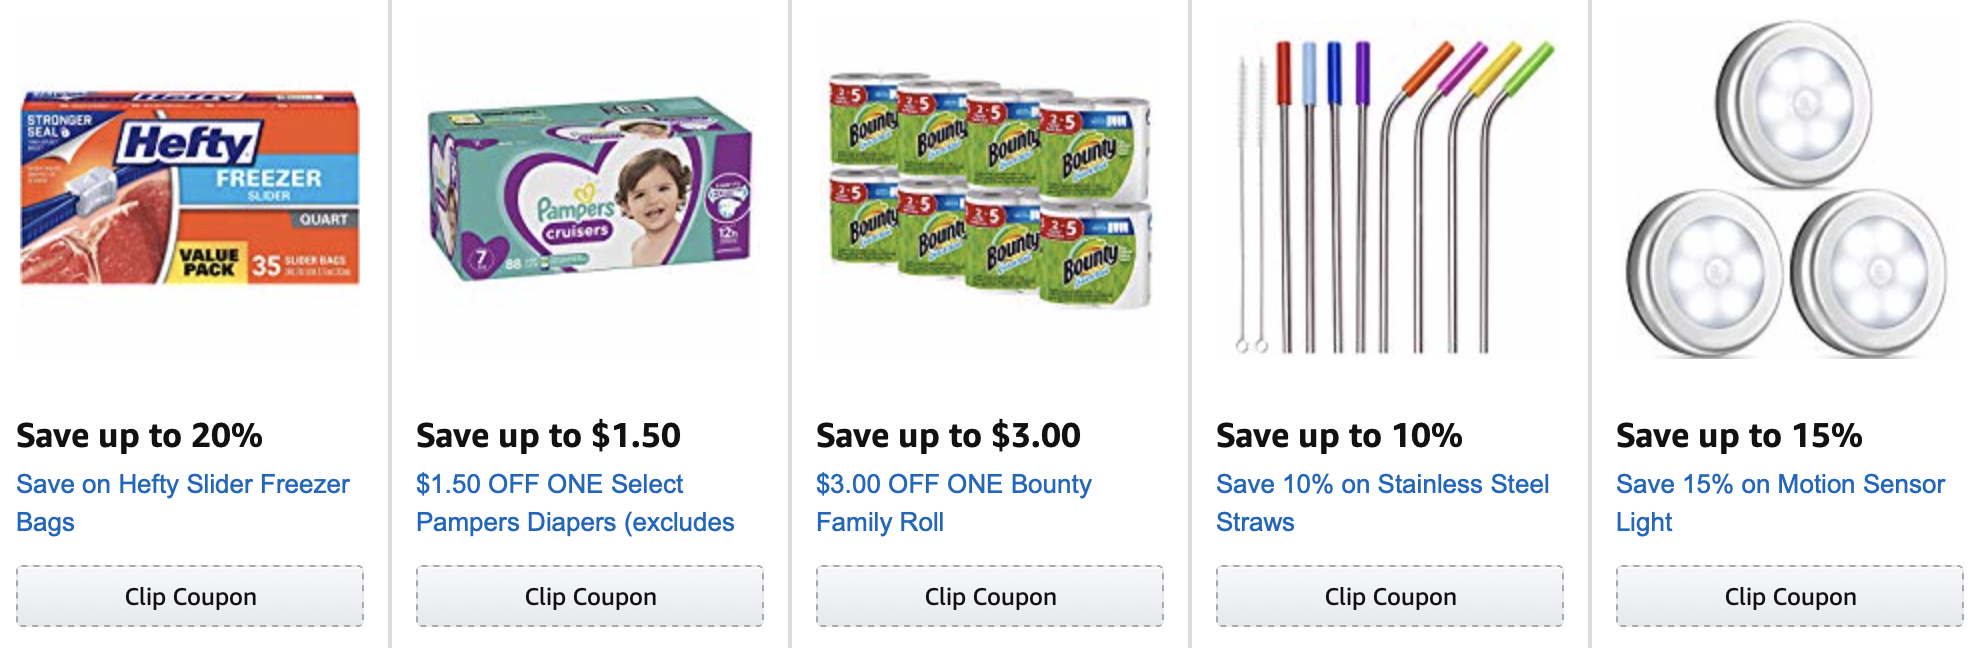 Amazon subscribe & save coupons